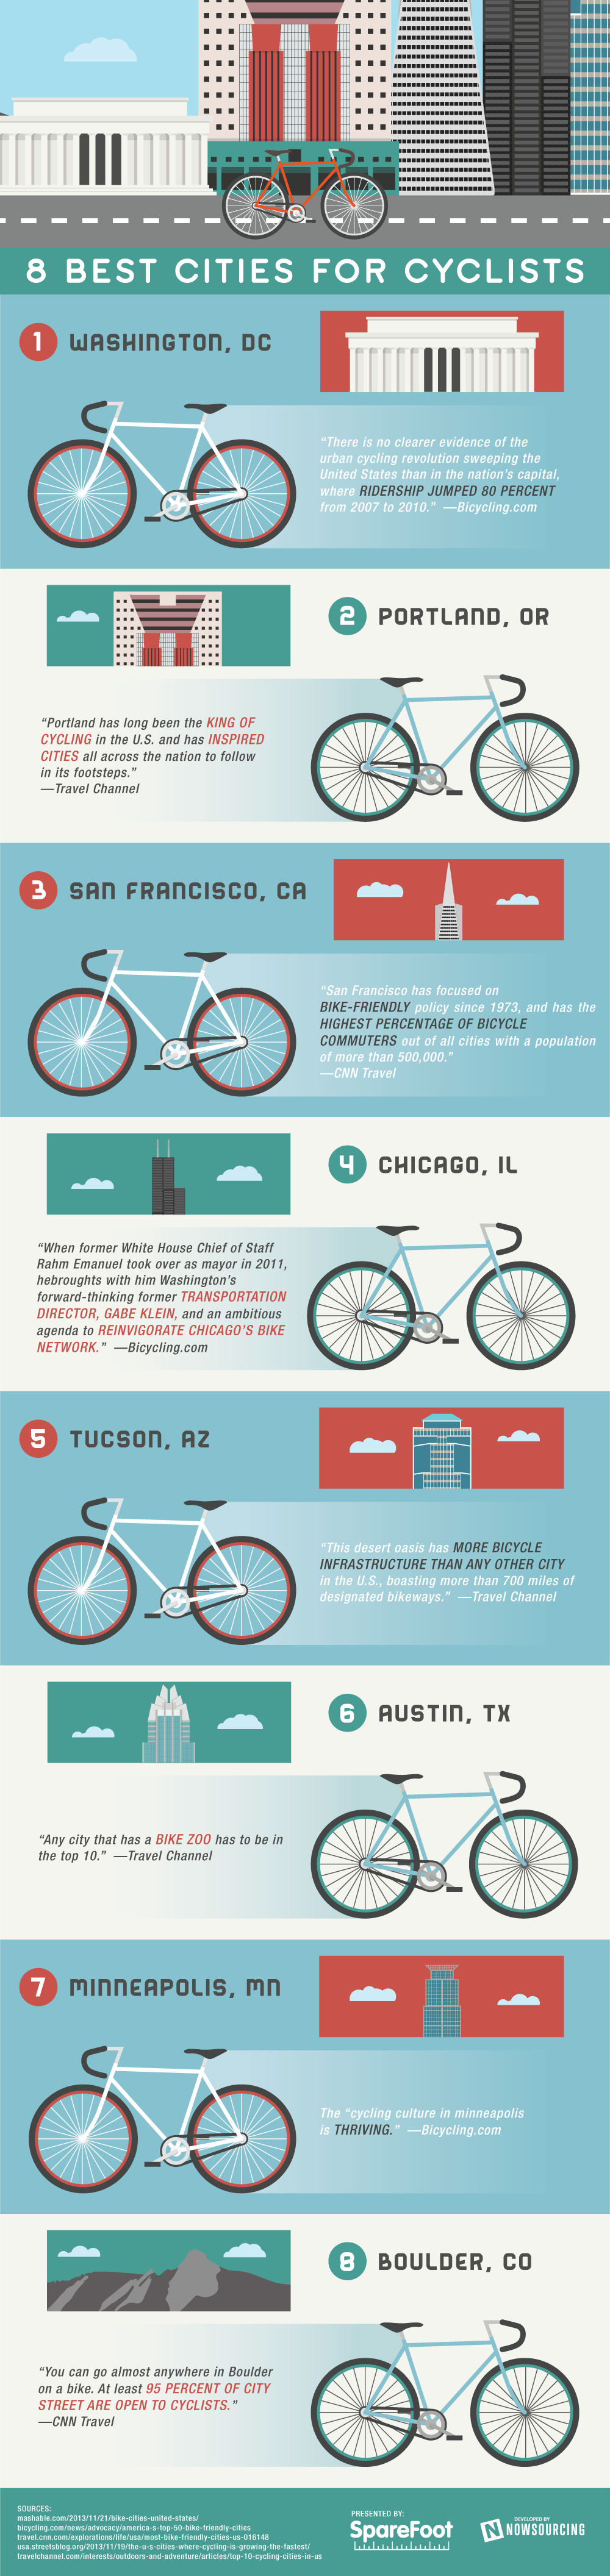 8-best-cities-for-cyclists